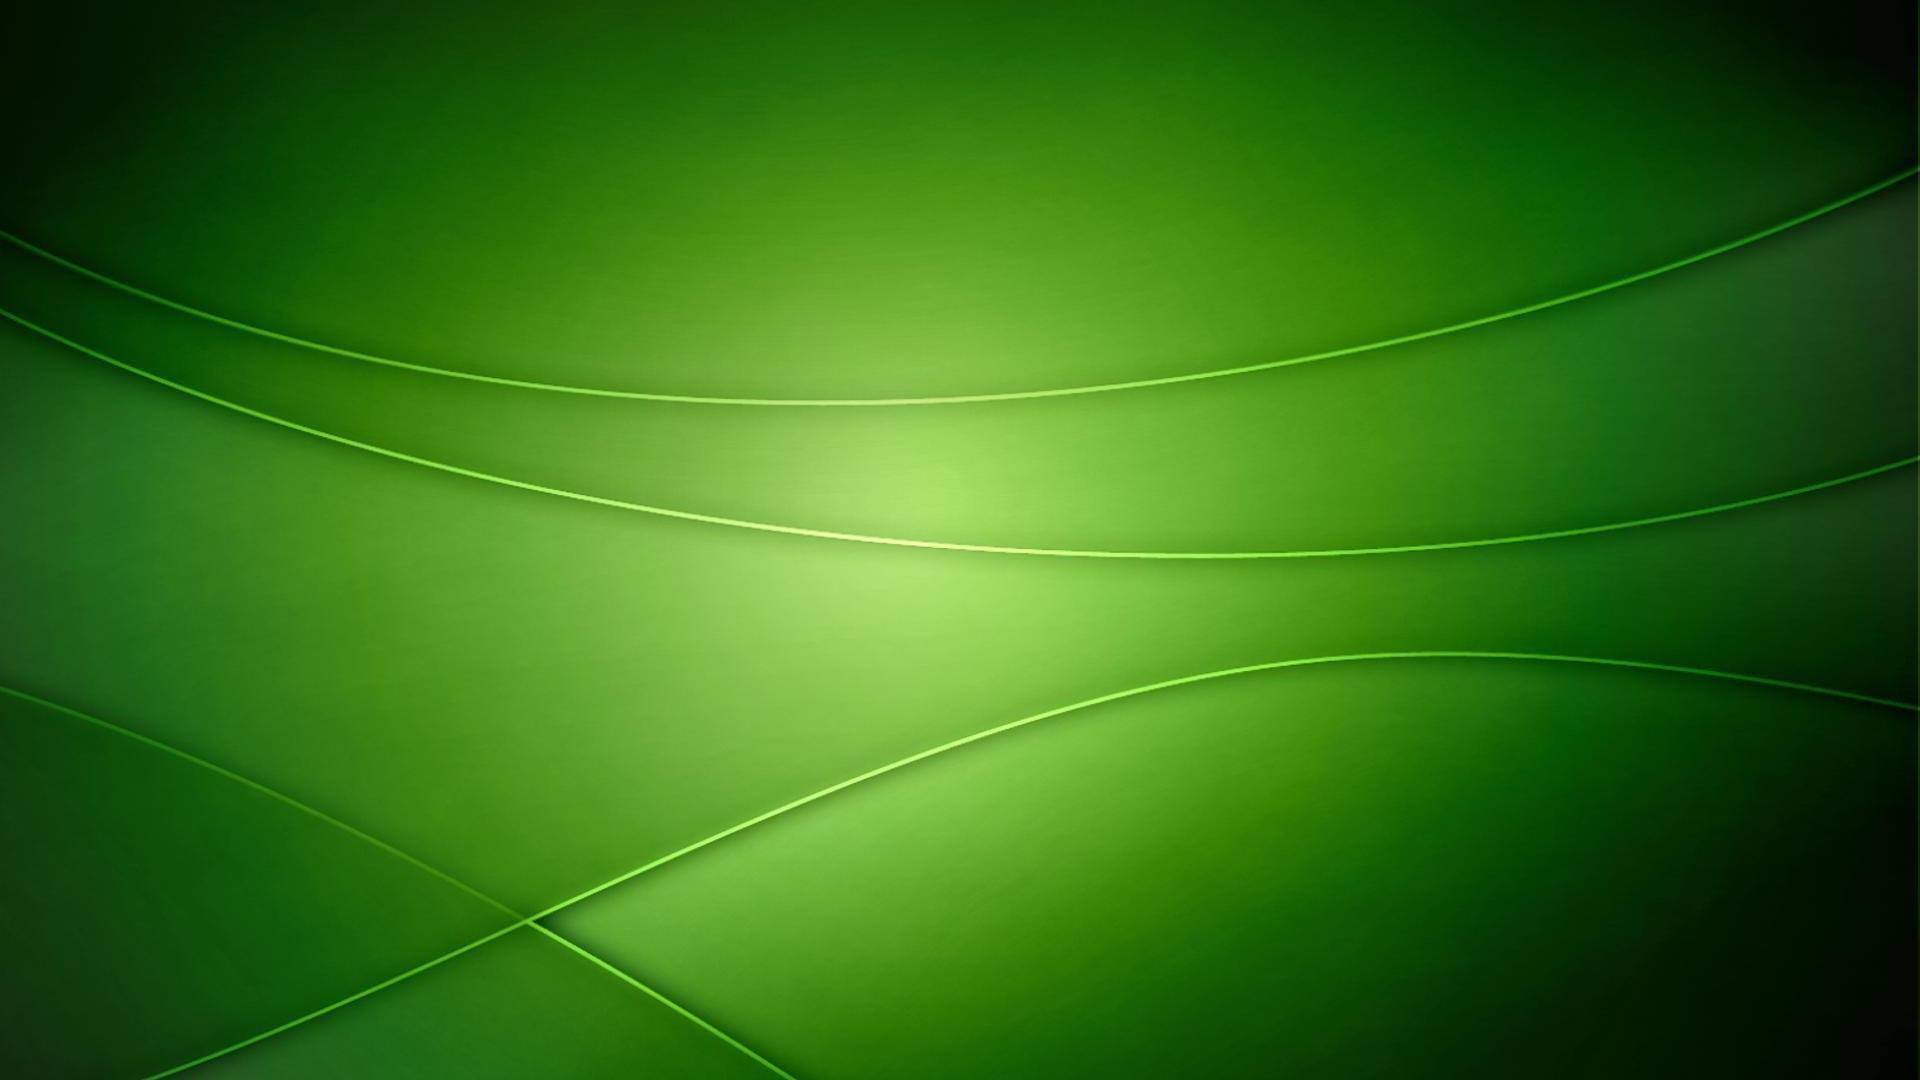 Green Desktop Backgrounds  Wallpaper Cave